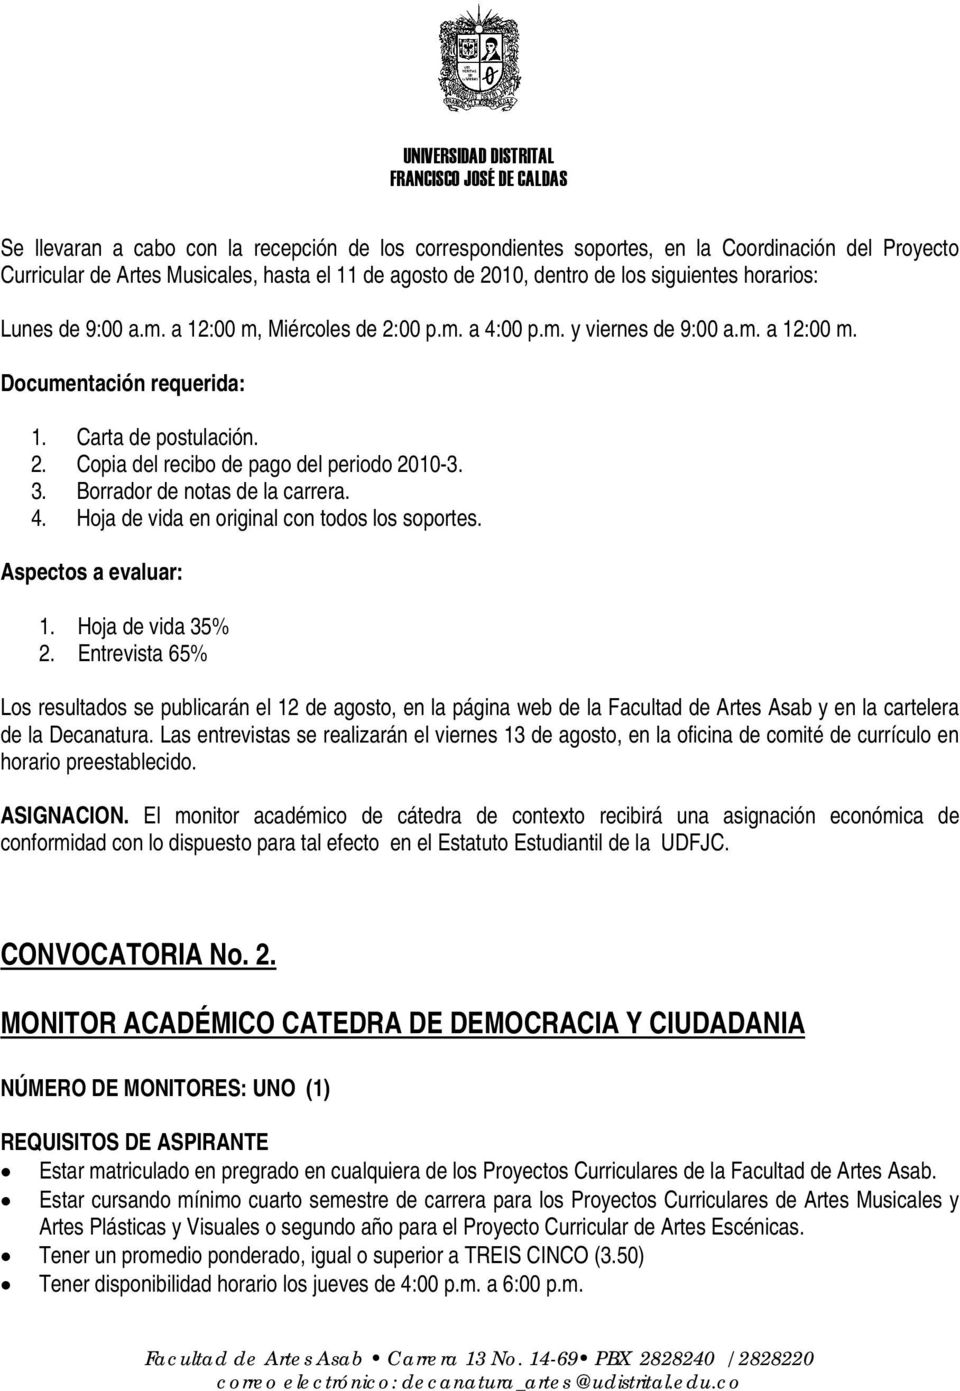 CONVOCATORIA No. 2.